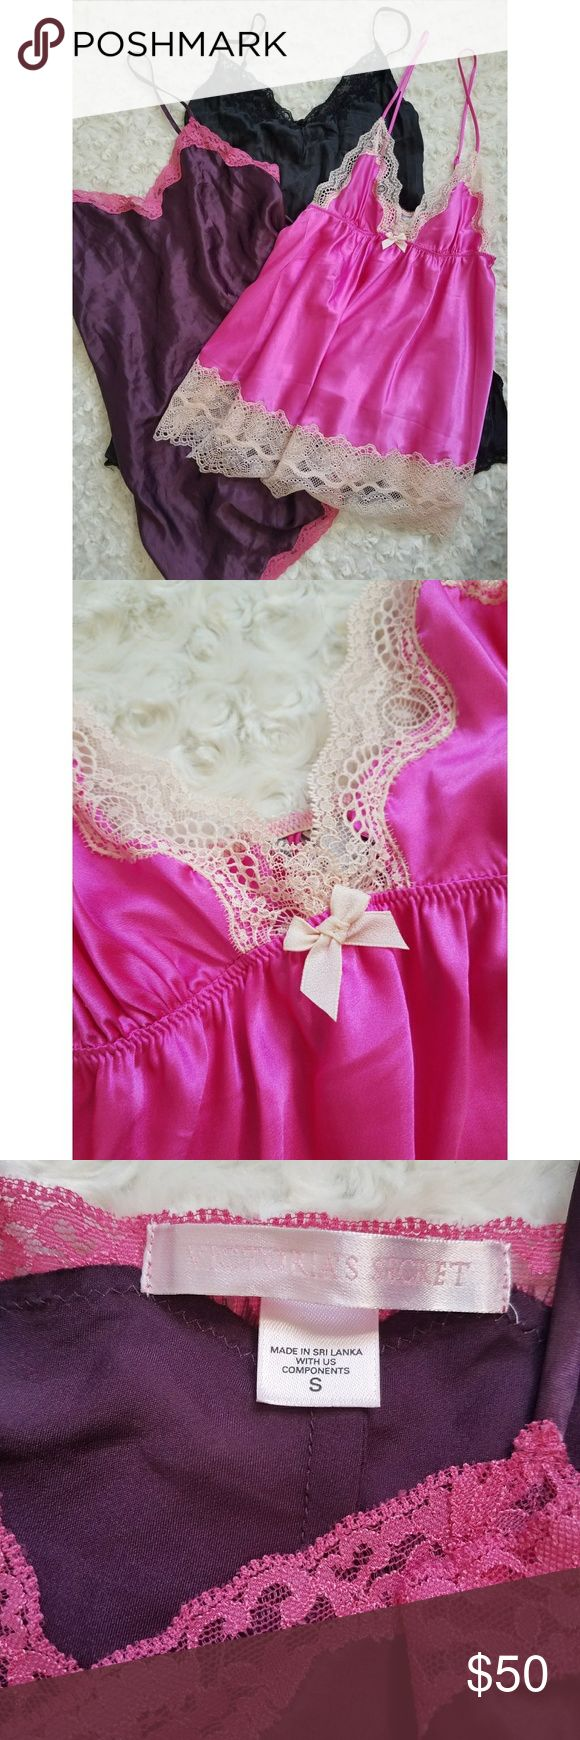 Victoria's Secret Nightie Bundle Size S. Assorted styles. Hot pink and creme. Purple and pink. And silk black.  Three for the price of one!!! Victoria's Secret Intimates & Sleepwear